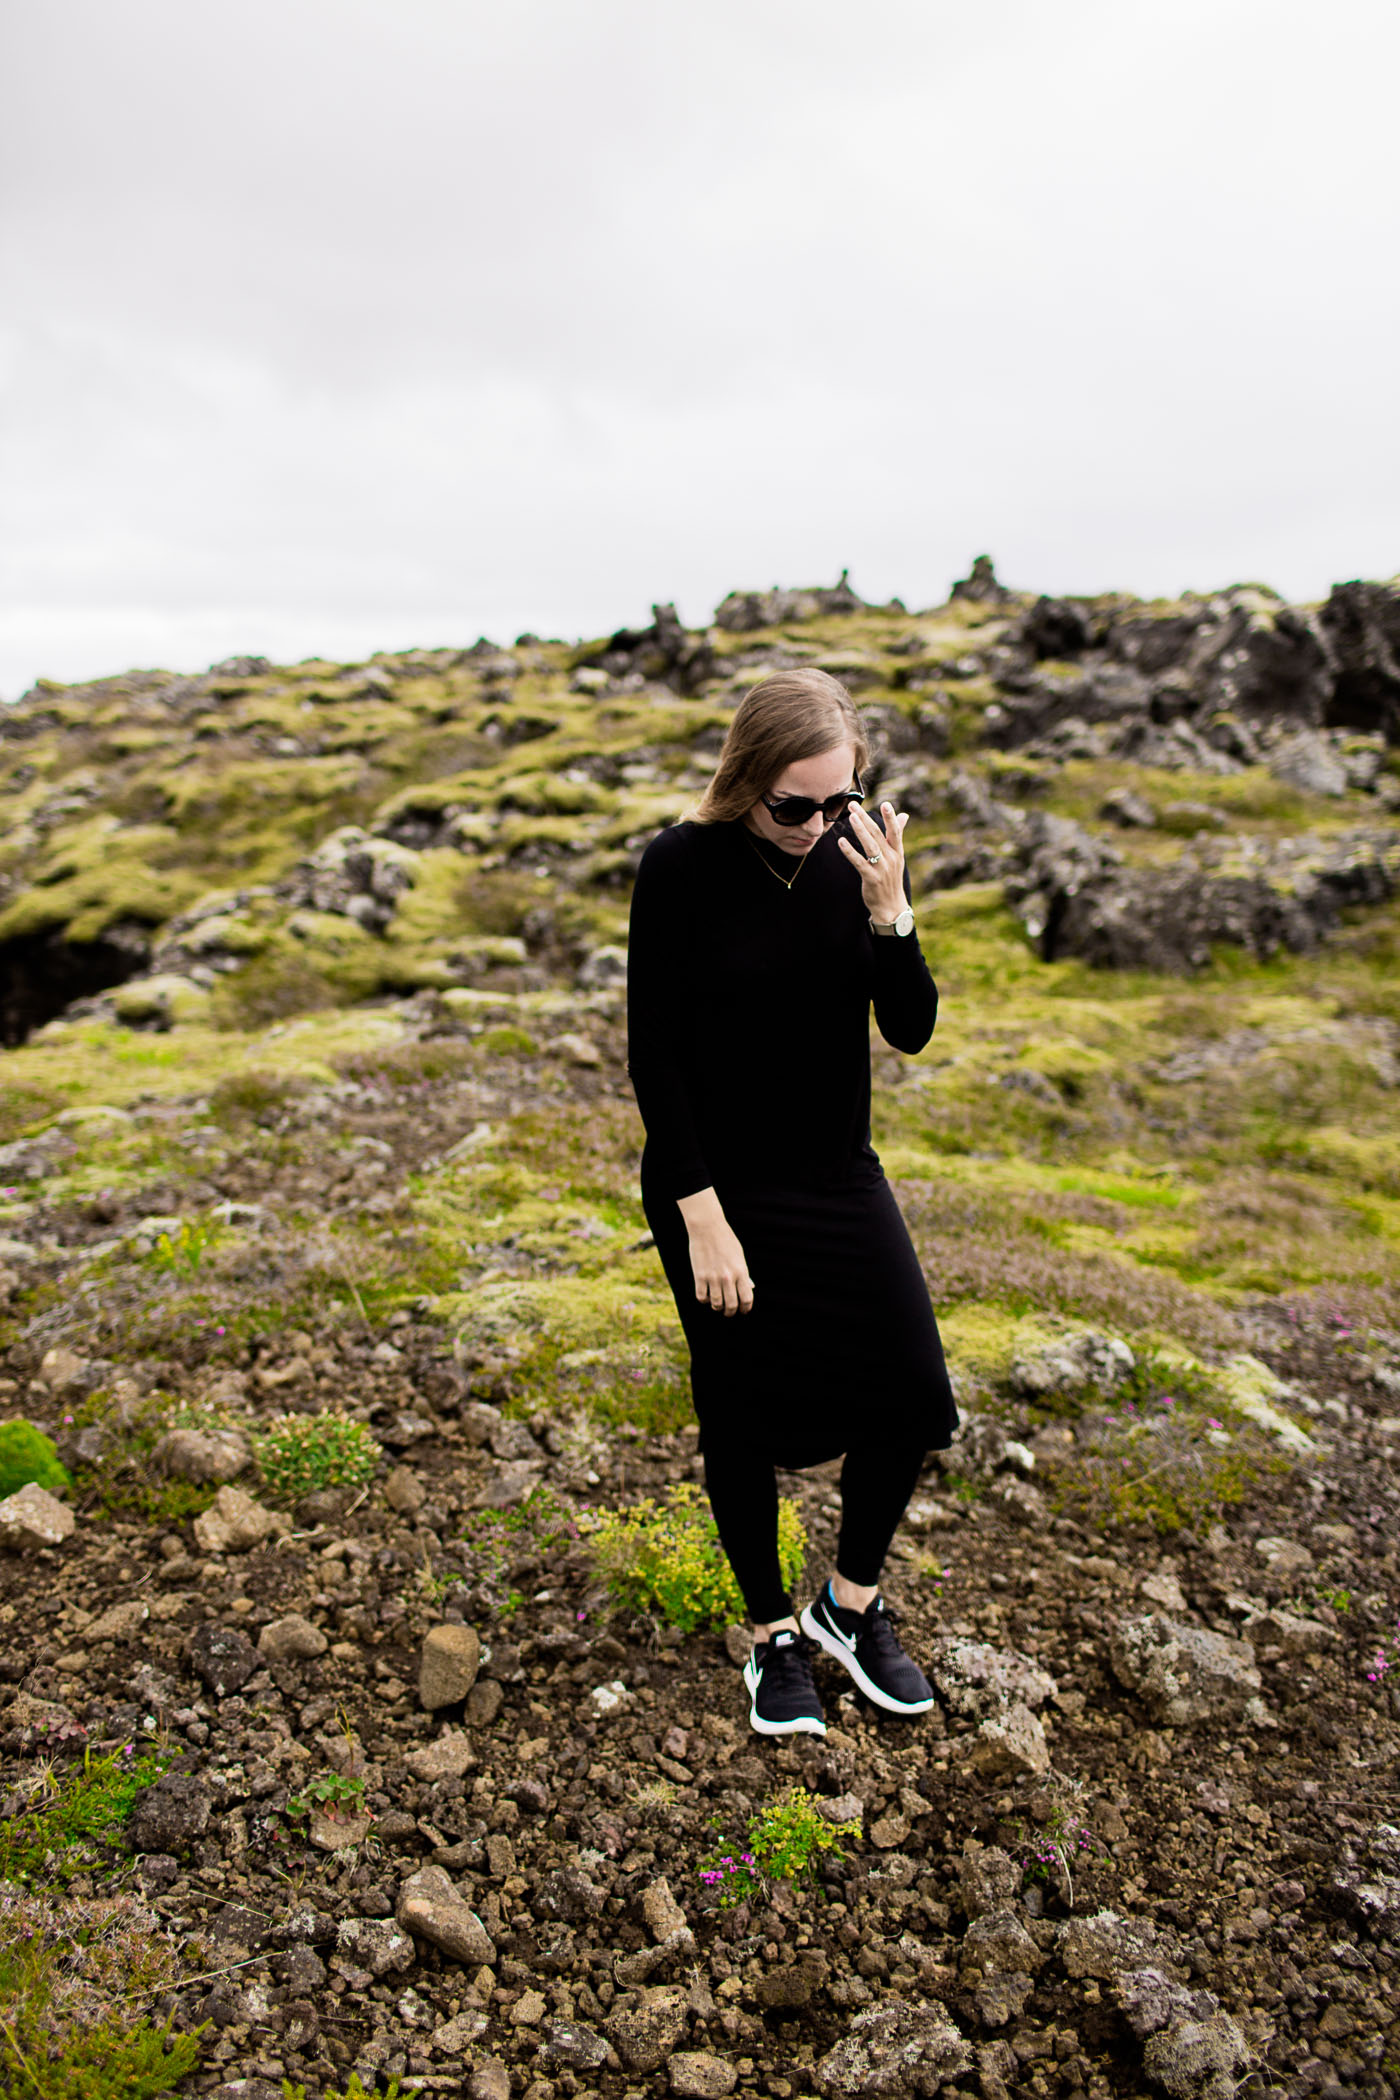 What I wore in Iceland - 10 days of outfits from my carry-on only packing list as we traveled around Iceland's Ring Road.